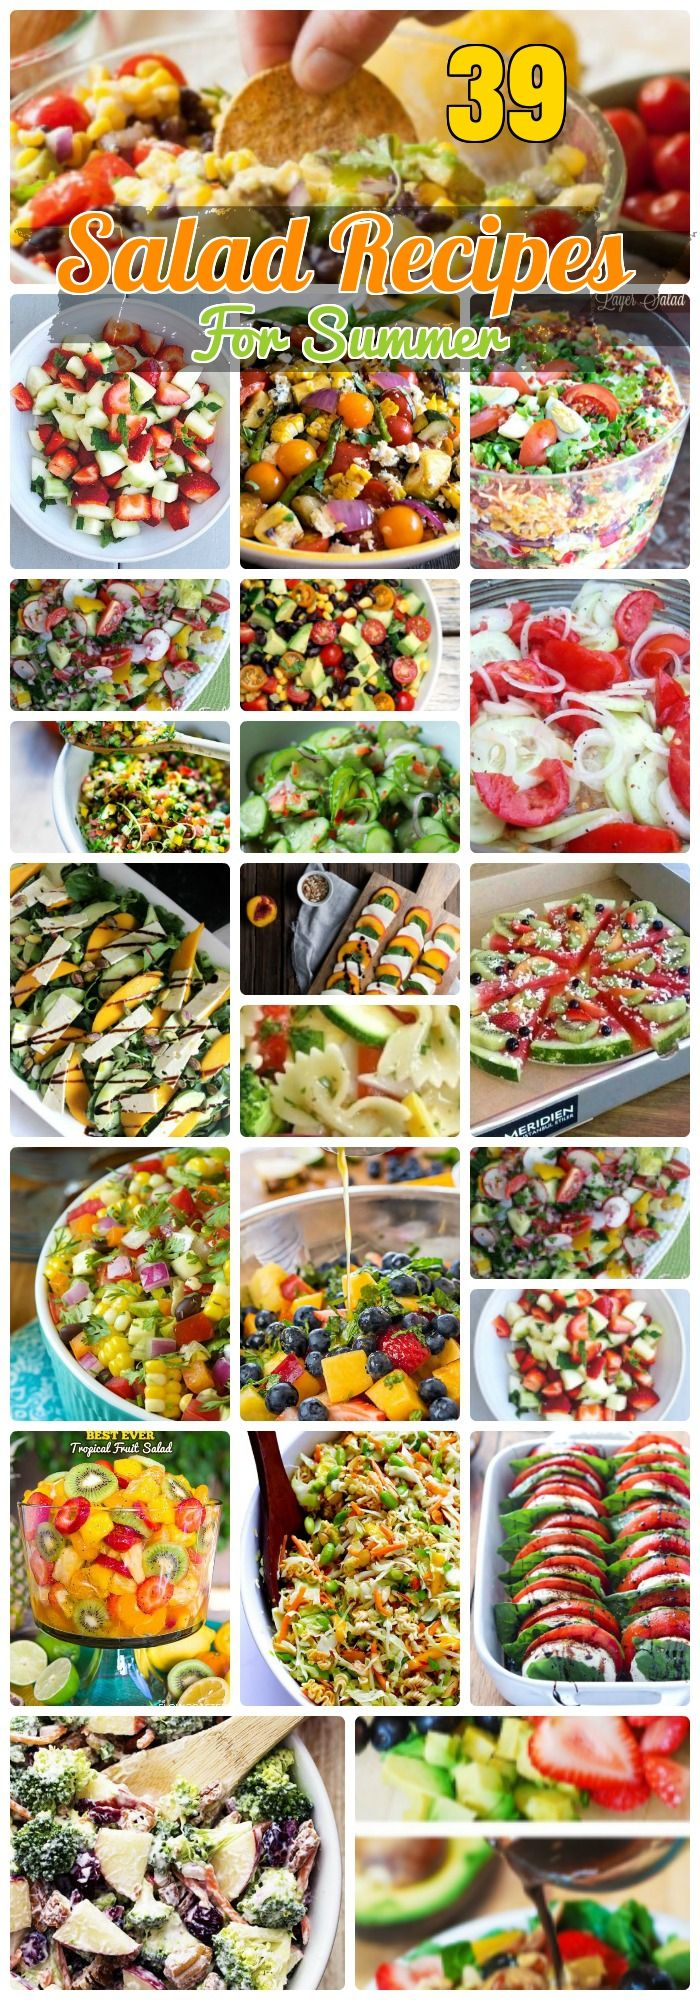 39 Vigorous Salad Recipes for Scorching Summer. Salad Recipes for party food ideas with chopped veggies, Corn, Cucumbers, some skin hydrating healthy fruit salads. Egg broccoli and Mexican salad recipes with Scrumptious Dressing and Pizza vegetarian salads for kids.